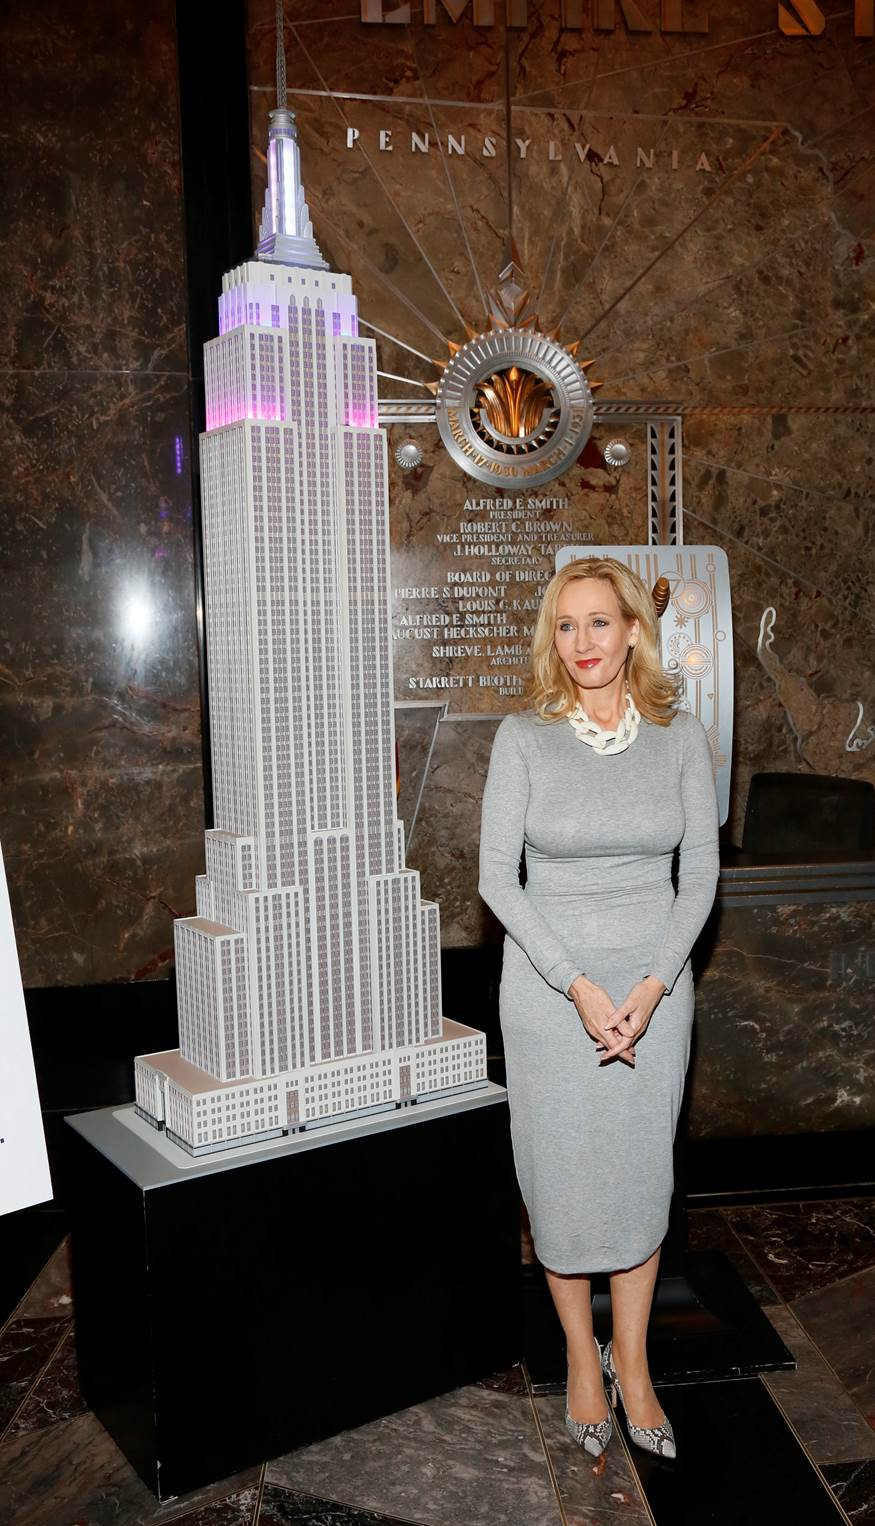 Jk Rowling Lights Up The Empire State Building To Launch Her